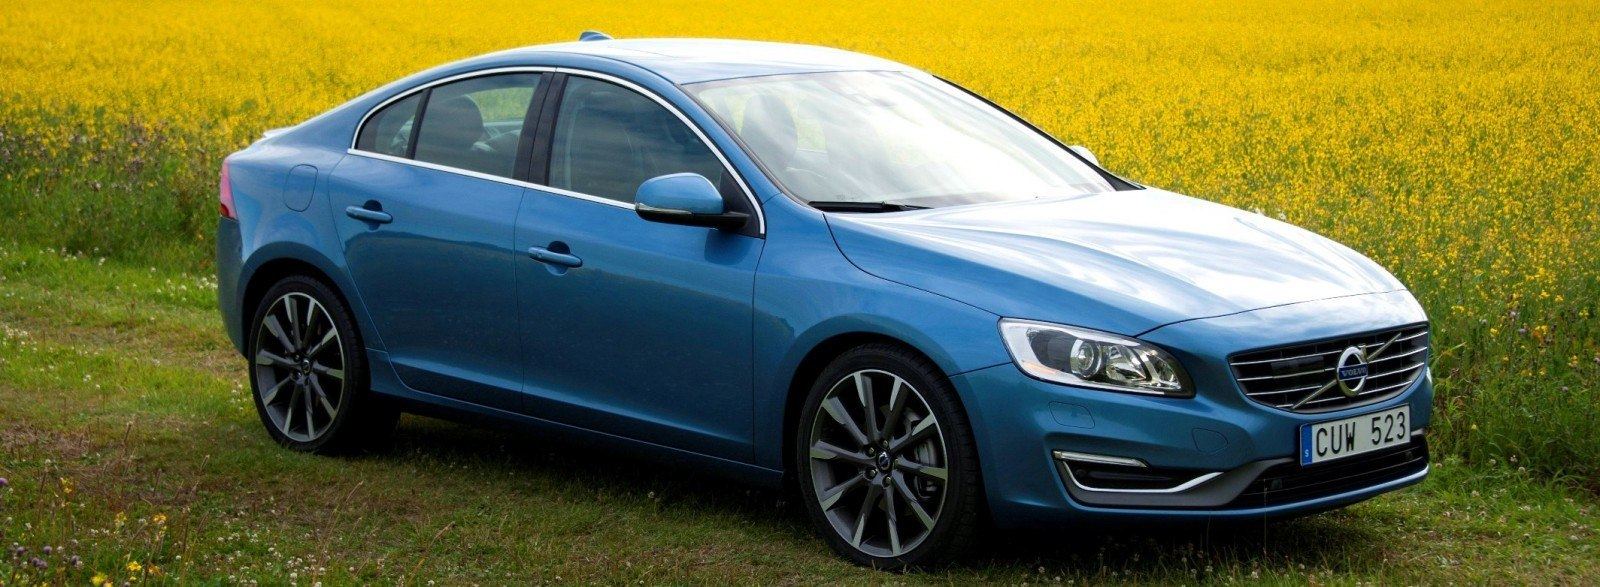 2014 volvo s60 and v60 buyers guide with 78 photos pricing and full tech specs 33k t5 to. Black Bedroom Furniture Sets. Home Design Ideas